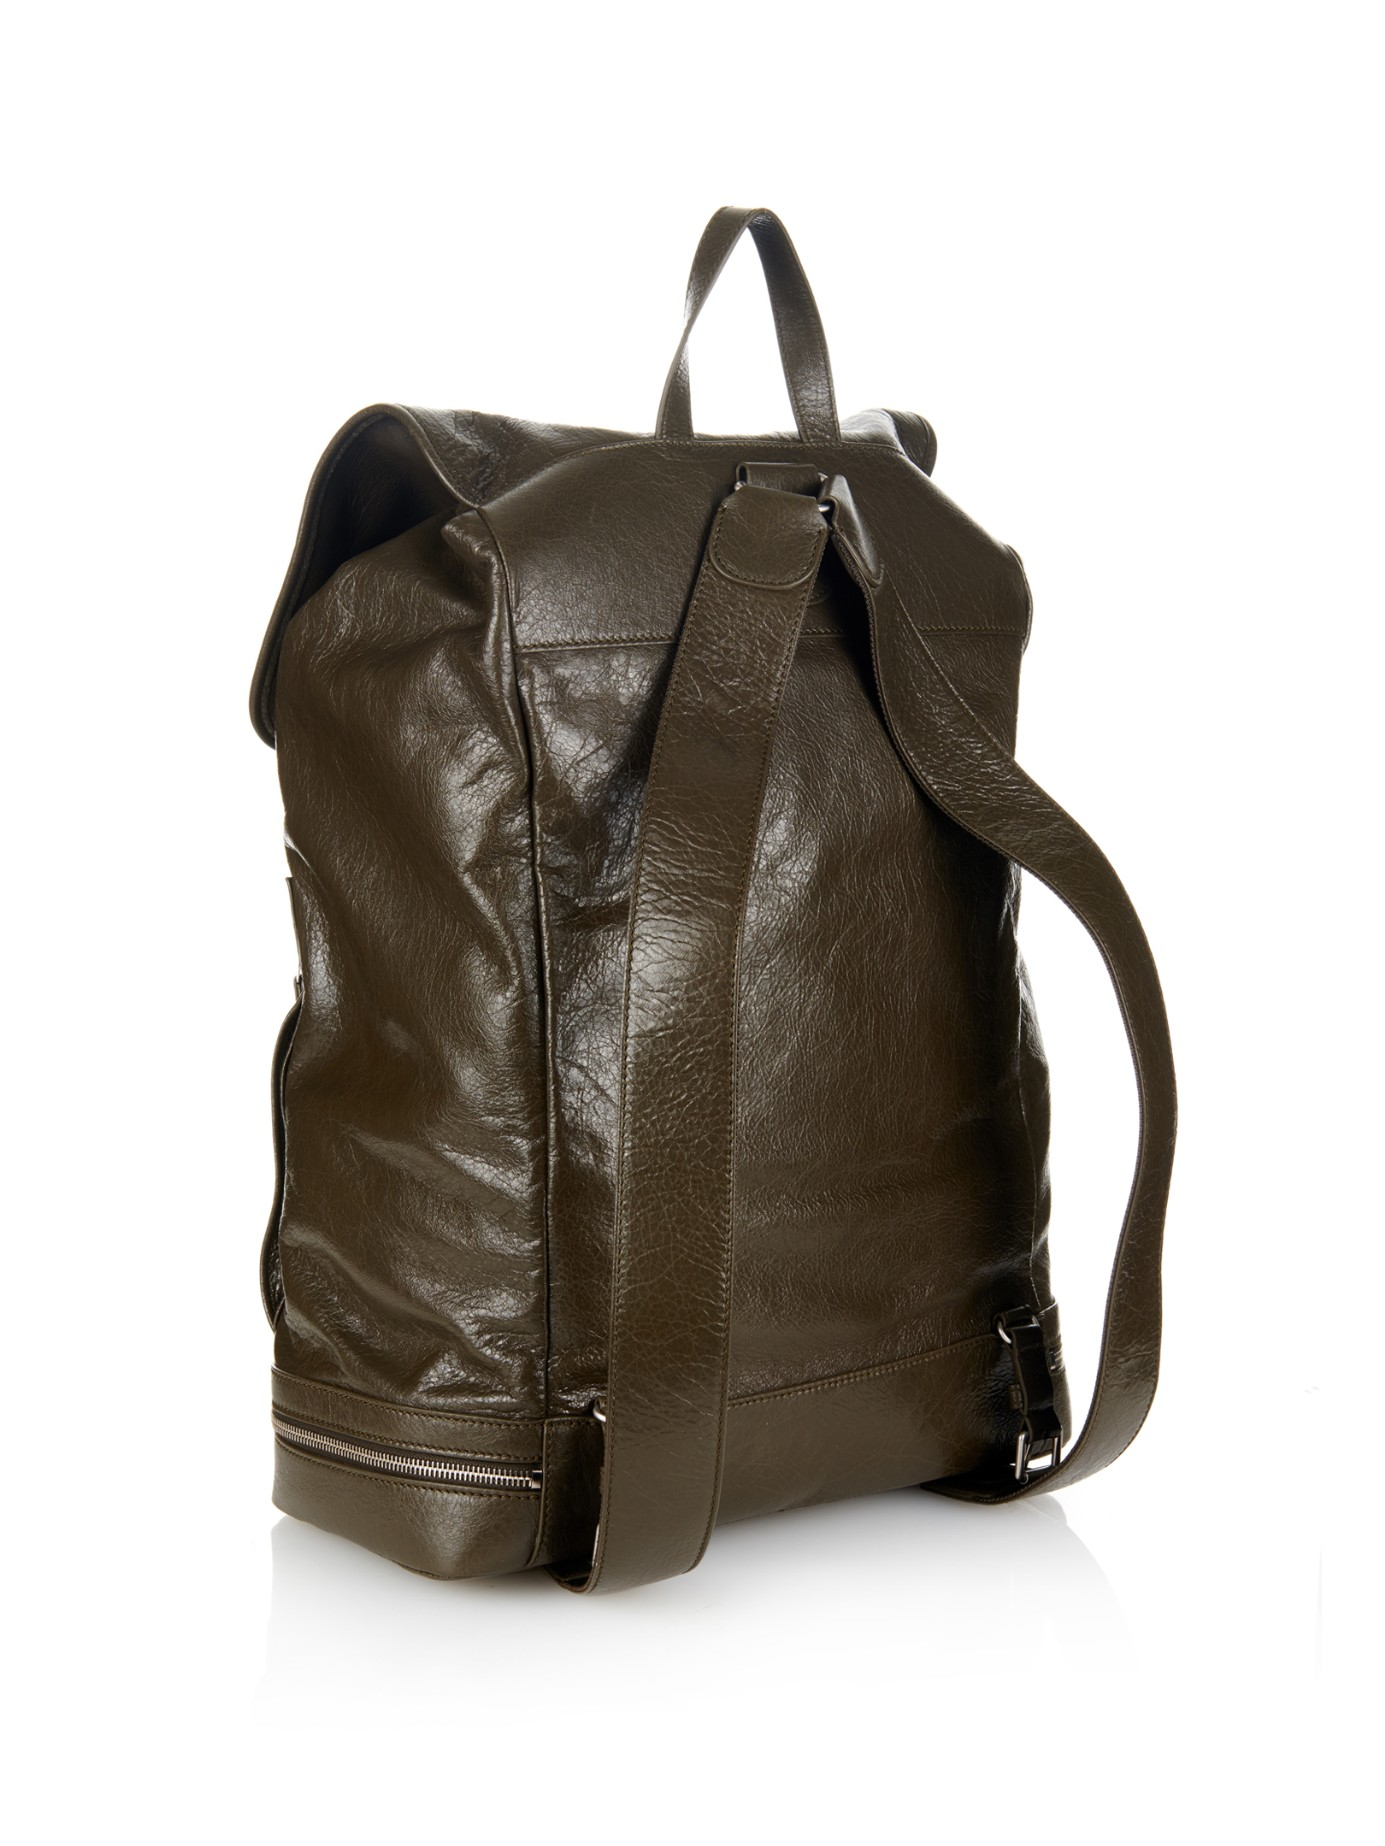 99a1b78fc613 Lyst - Balenciaga Arena Traveller Backpack in Natural for Men